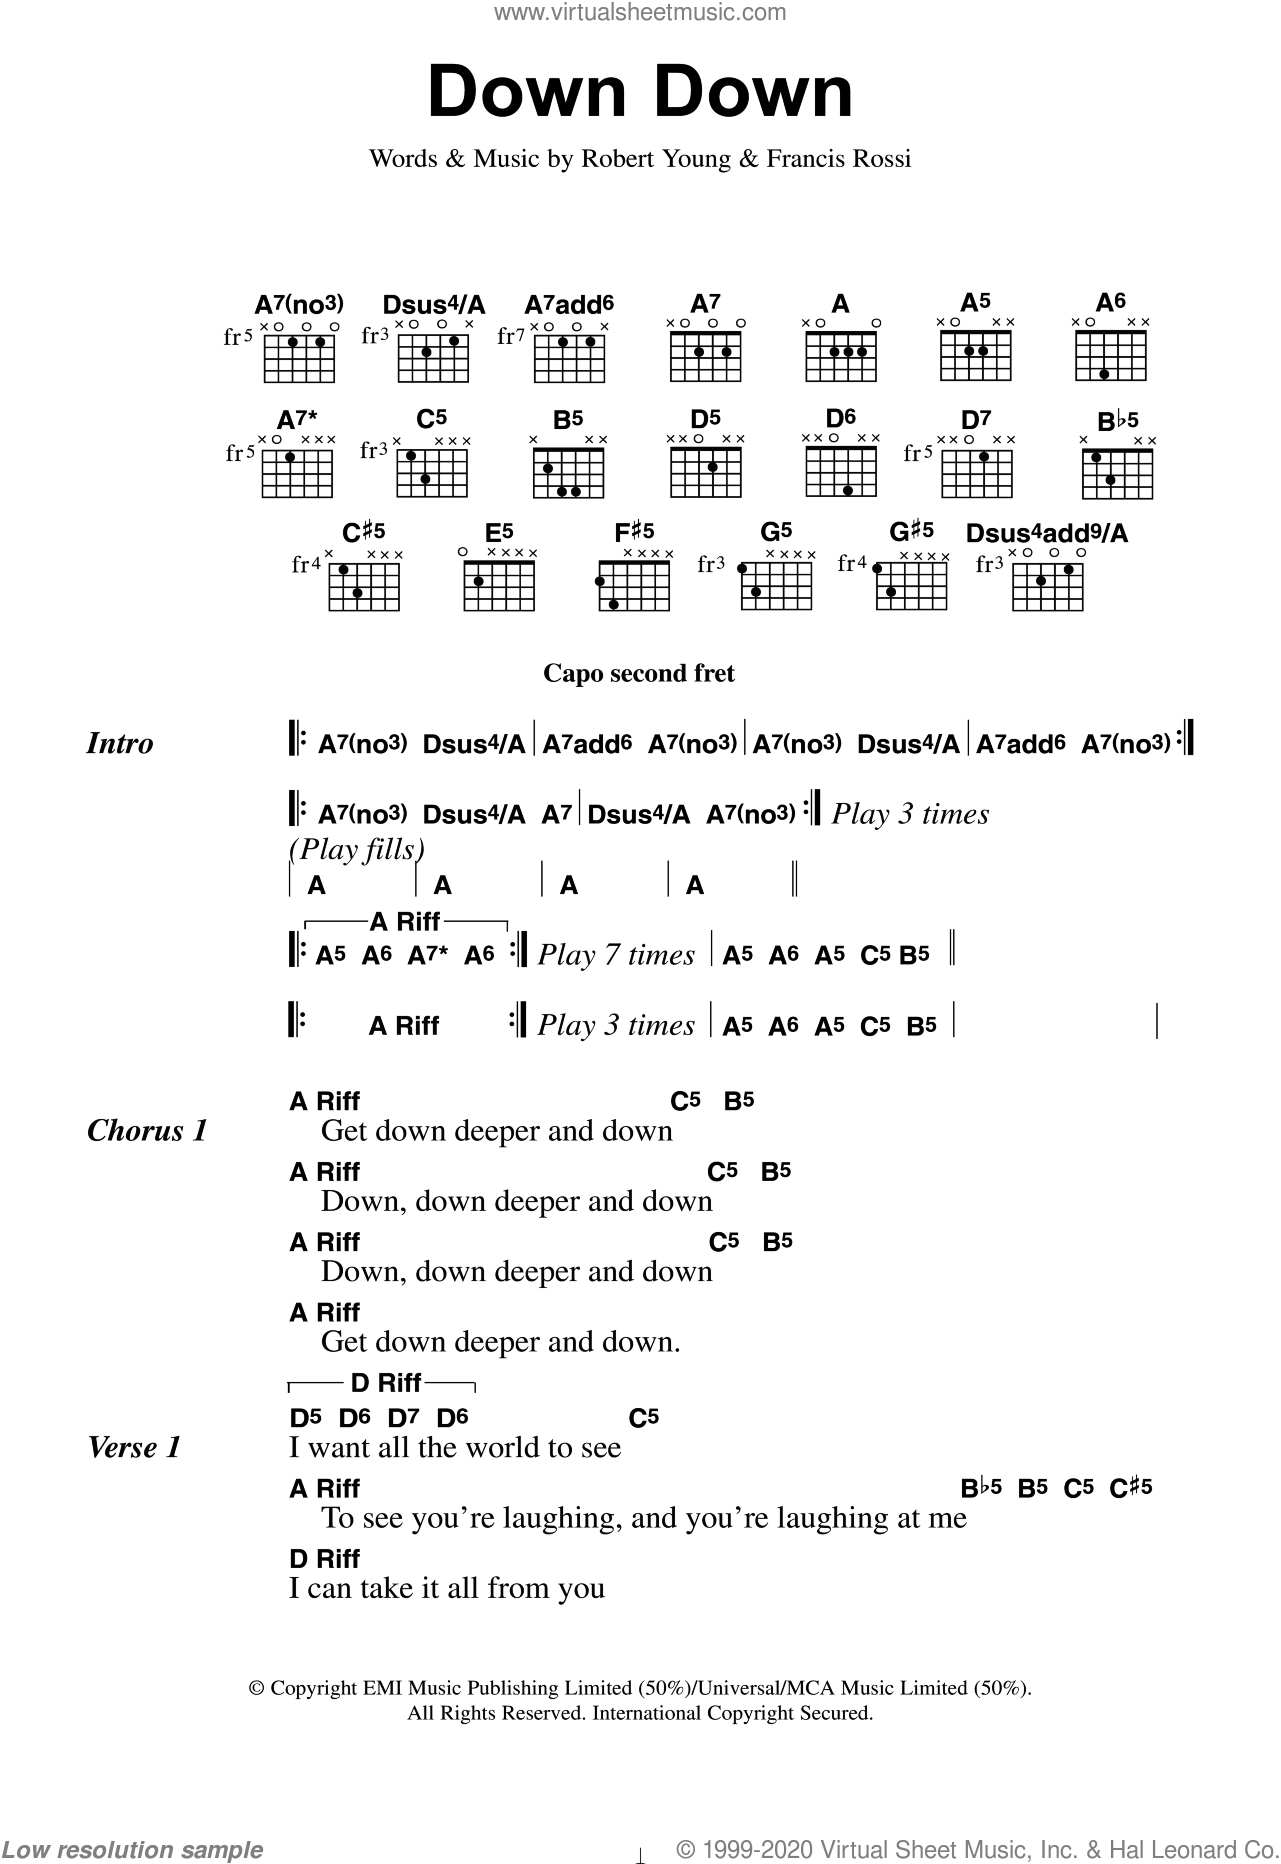 Down Down sheet music for guitar (chords) by Status Quo, Francis Rossi and Robert Young, intermediate skill level